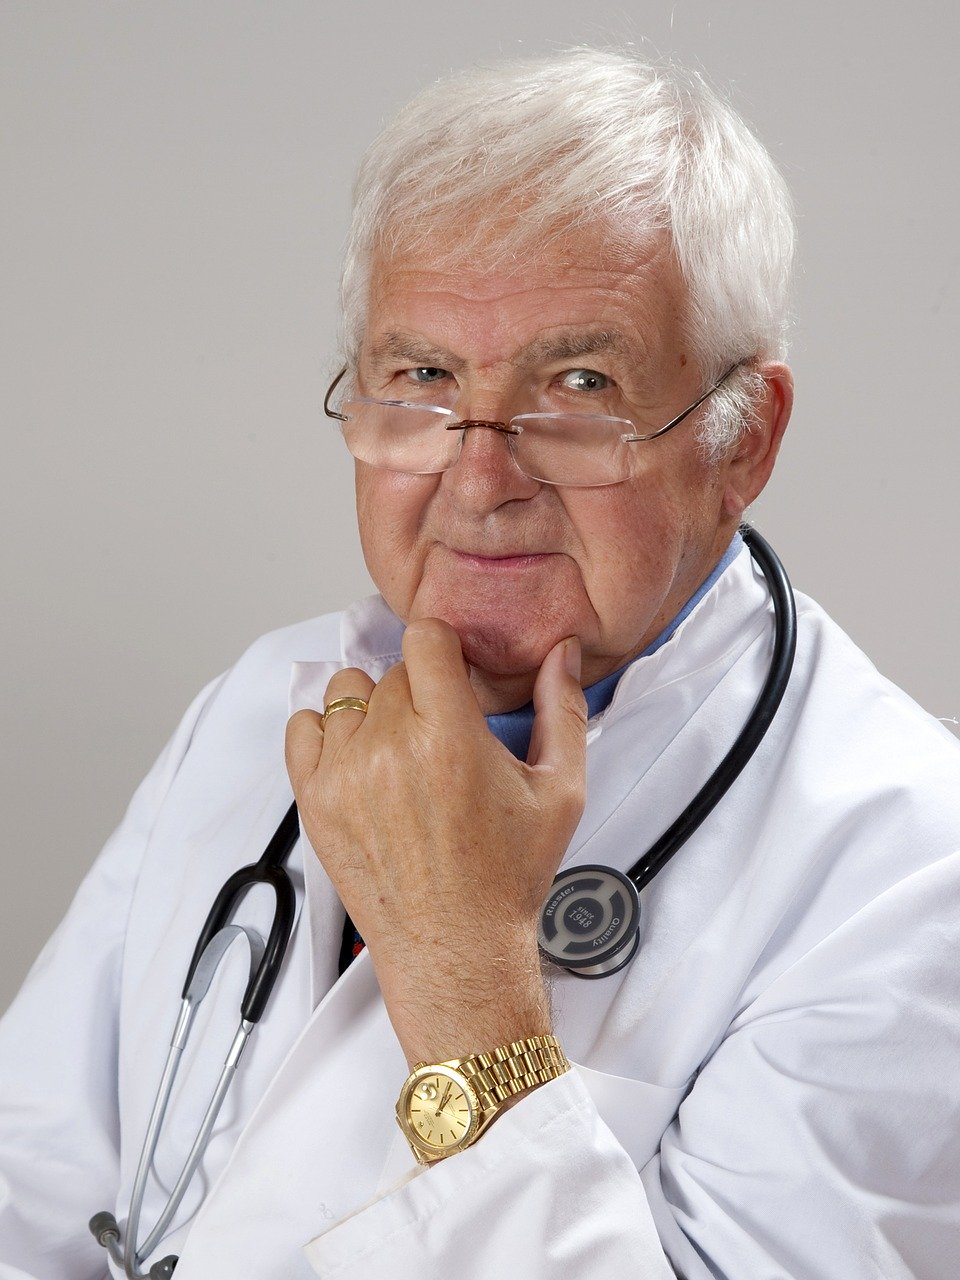 doctor, gray hair, experience